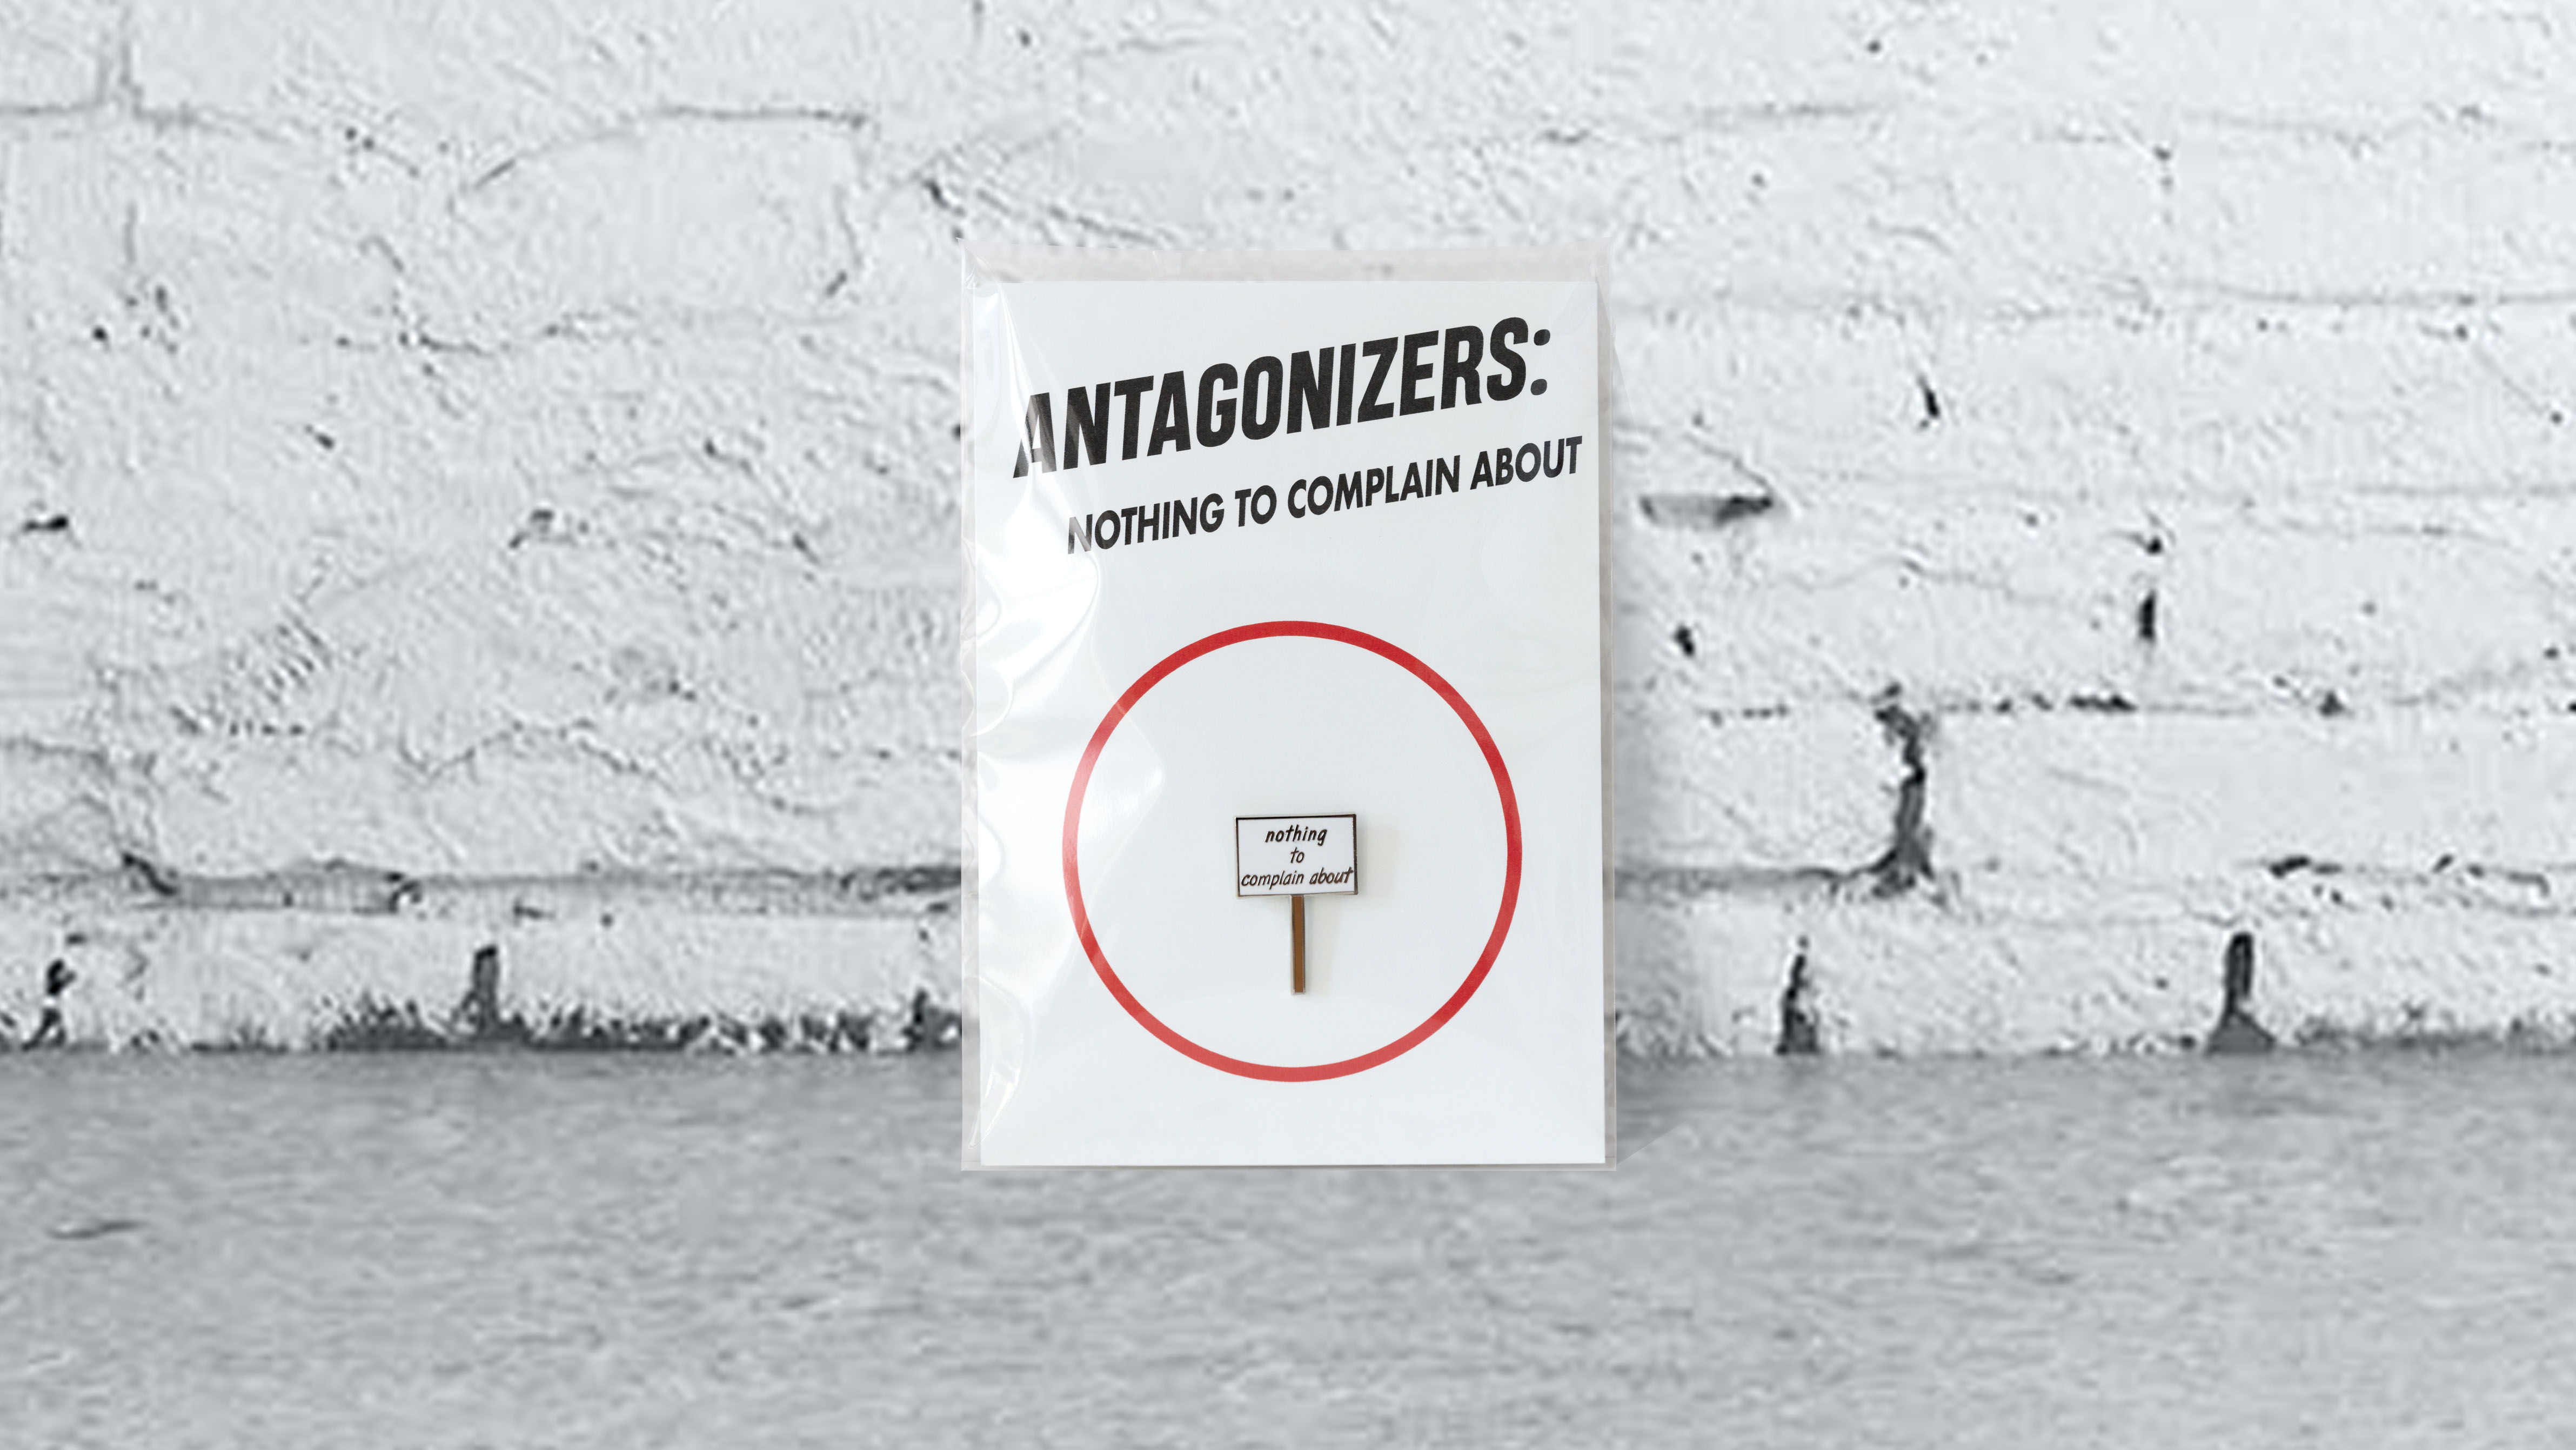 Antagonizers: Nothing to complain about